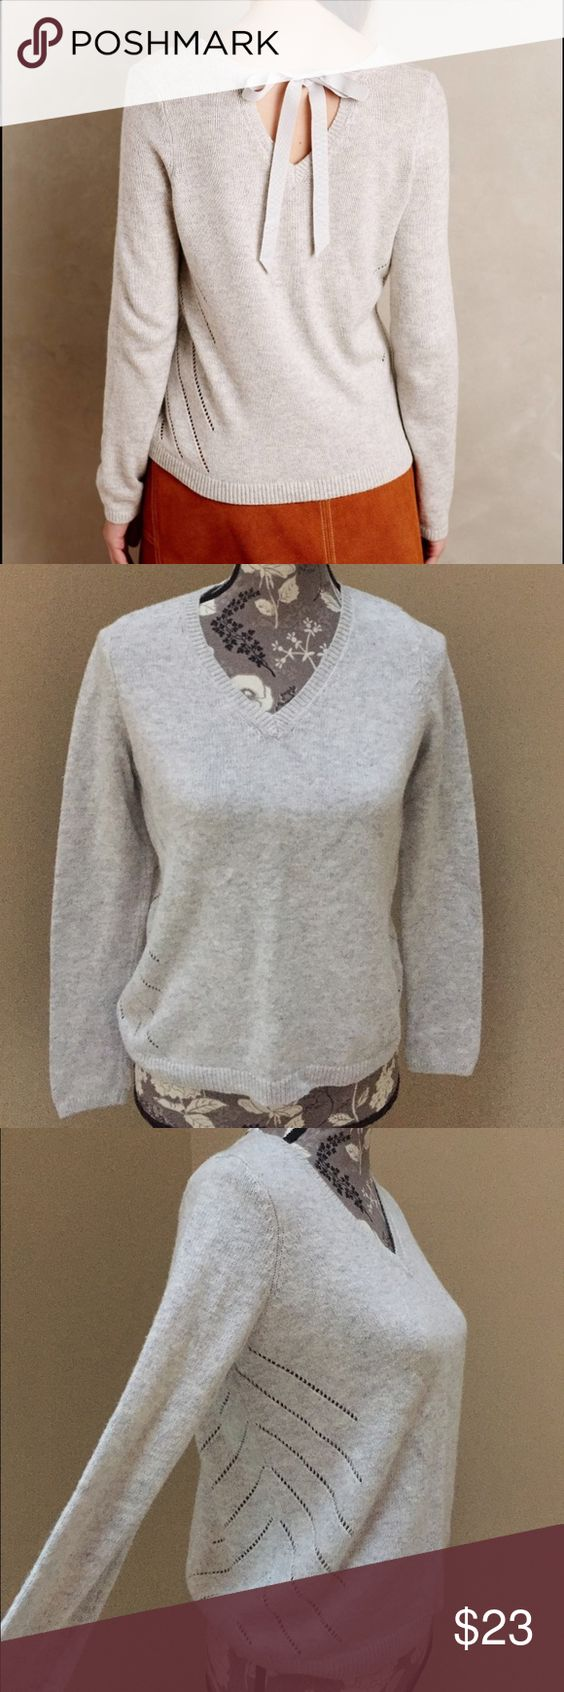 Anthropologie Moth ribbon tie back sweater Anthropologie Moth gray ribbon tie back sweater.  V neck front and back cut out with tie back detail. Super cute and fun. Size small. Excellent condition. Chest is 19 in flat and length is 22 in long. Sleeves measure roughly 25 in. A cotton cashmere blend 53% cotton, 26% viscose, 5% cashmere and 1% spandex. Anthropologie Sweaters